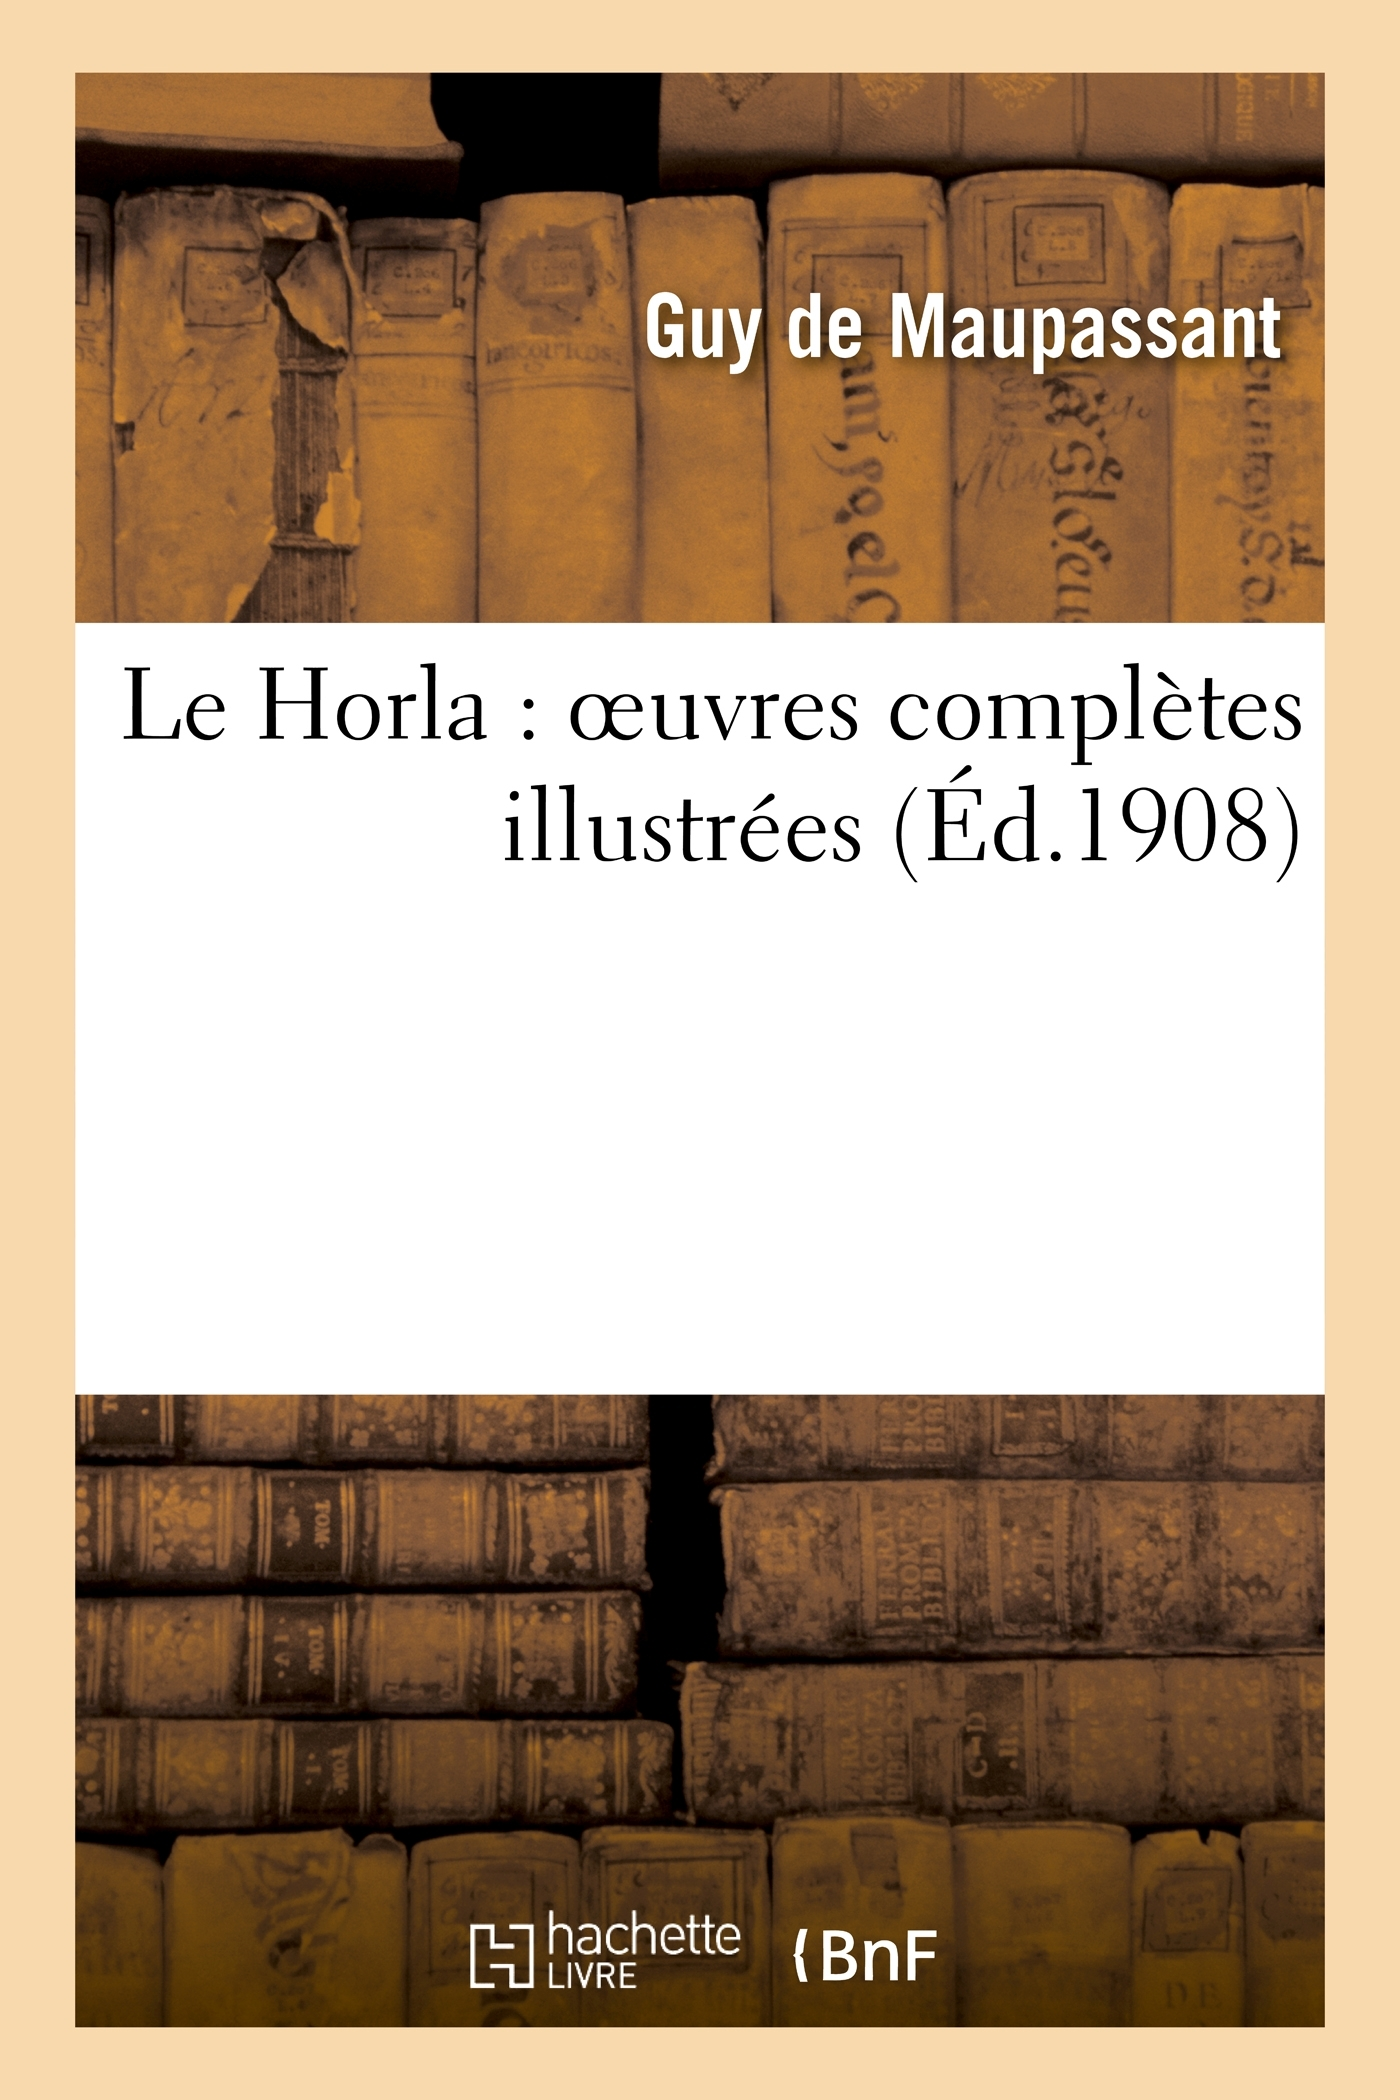 LE HORLA : OEUVRES COMPLETES ILLUSTREES